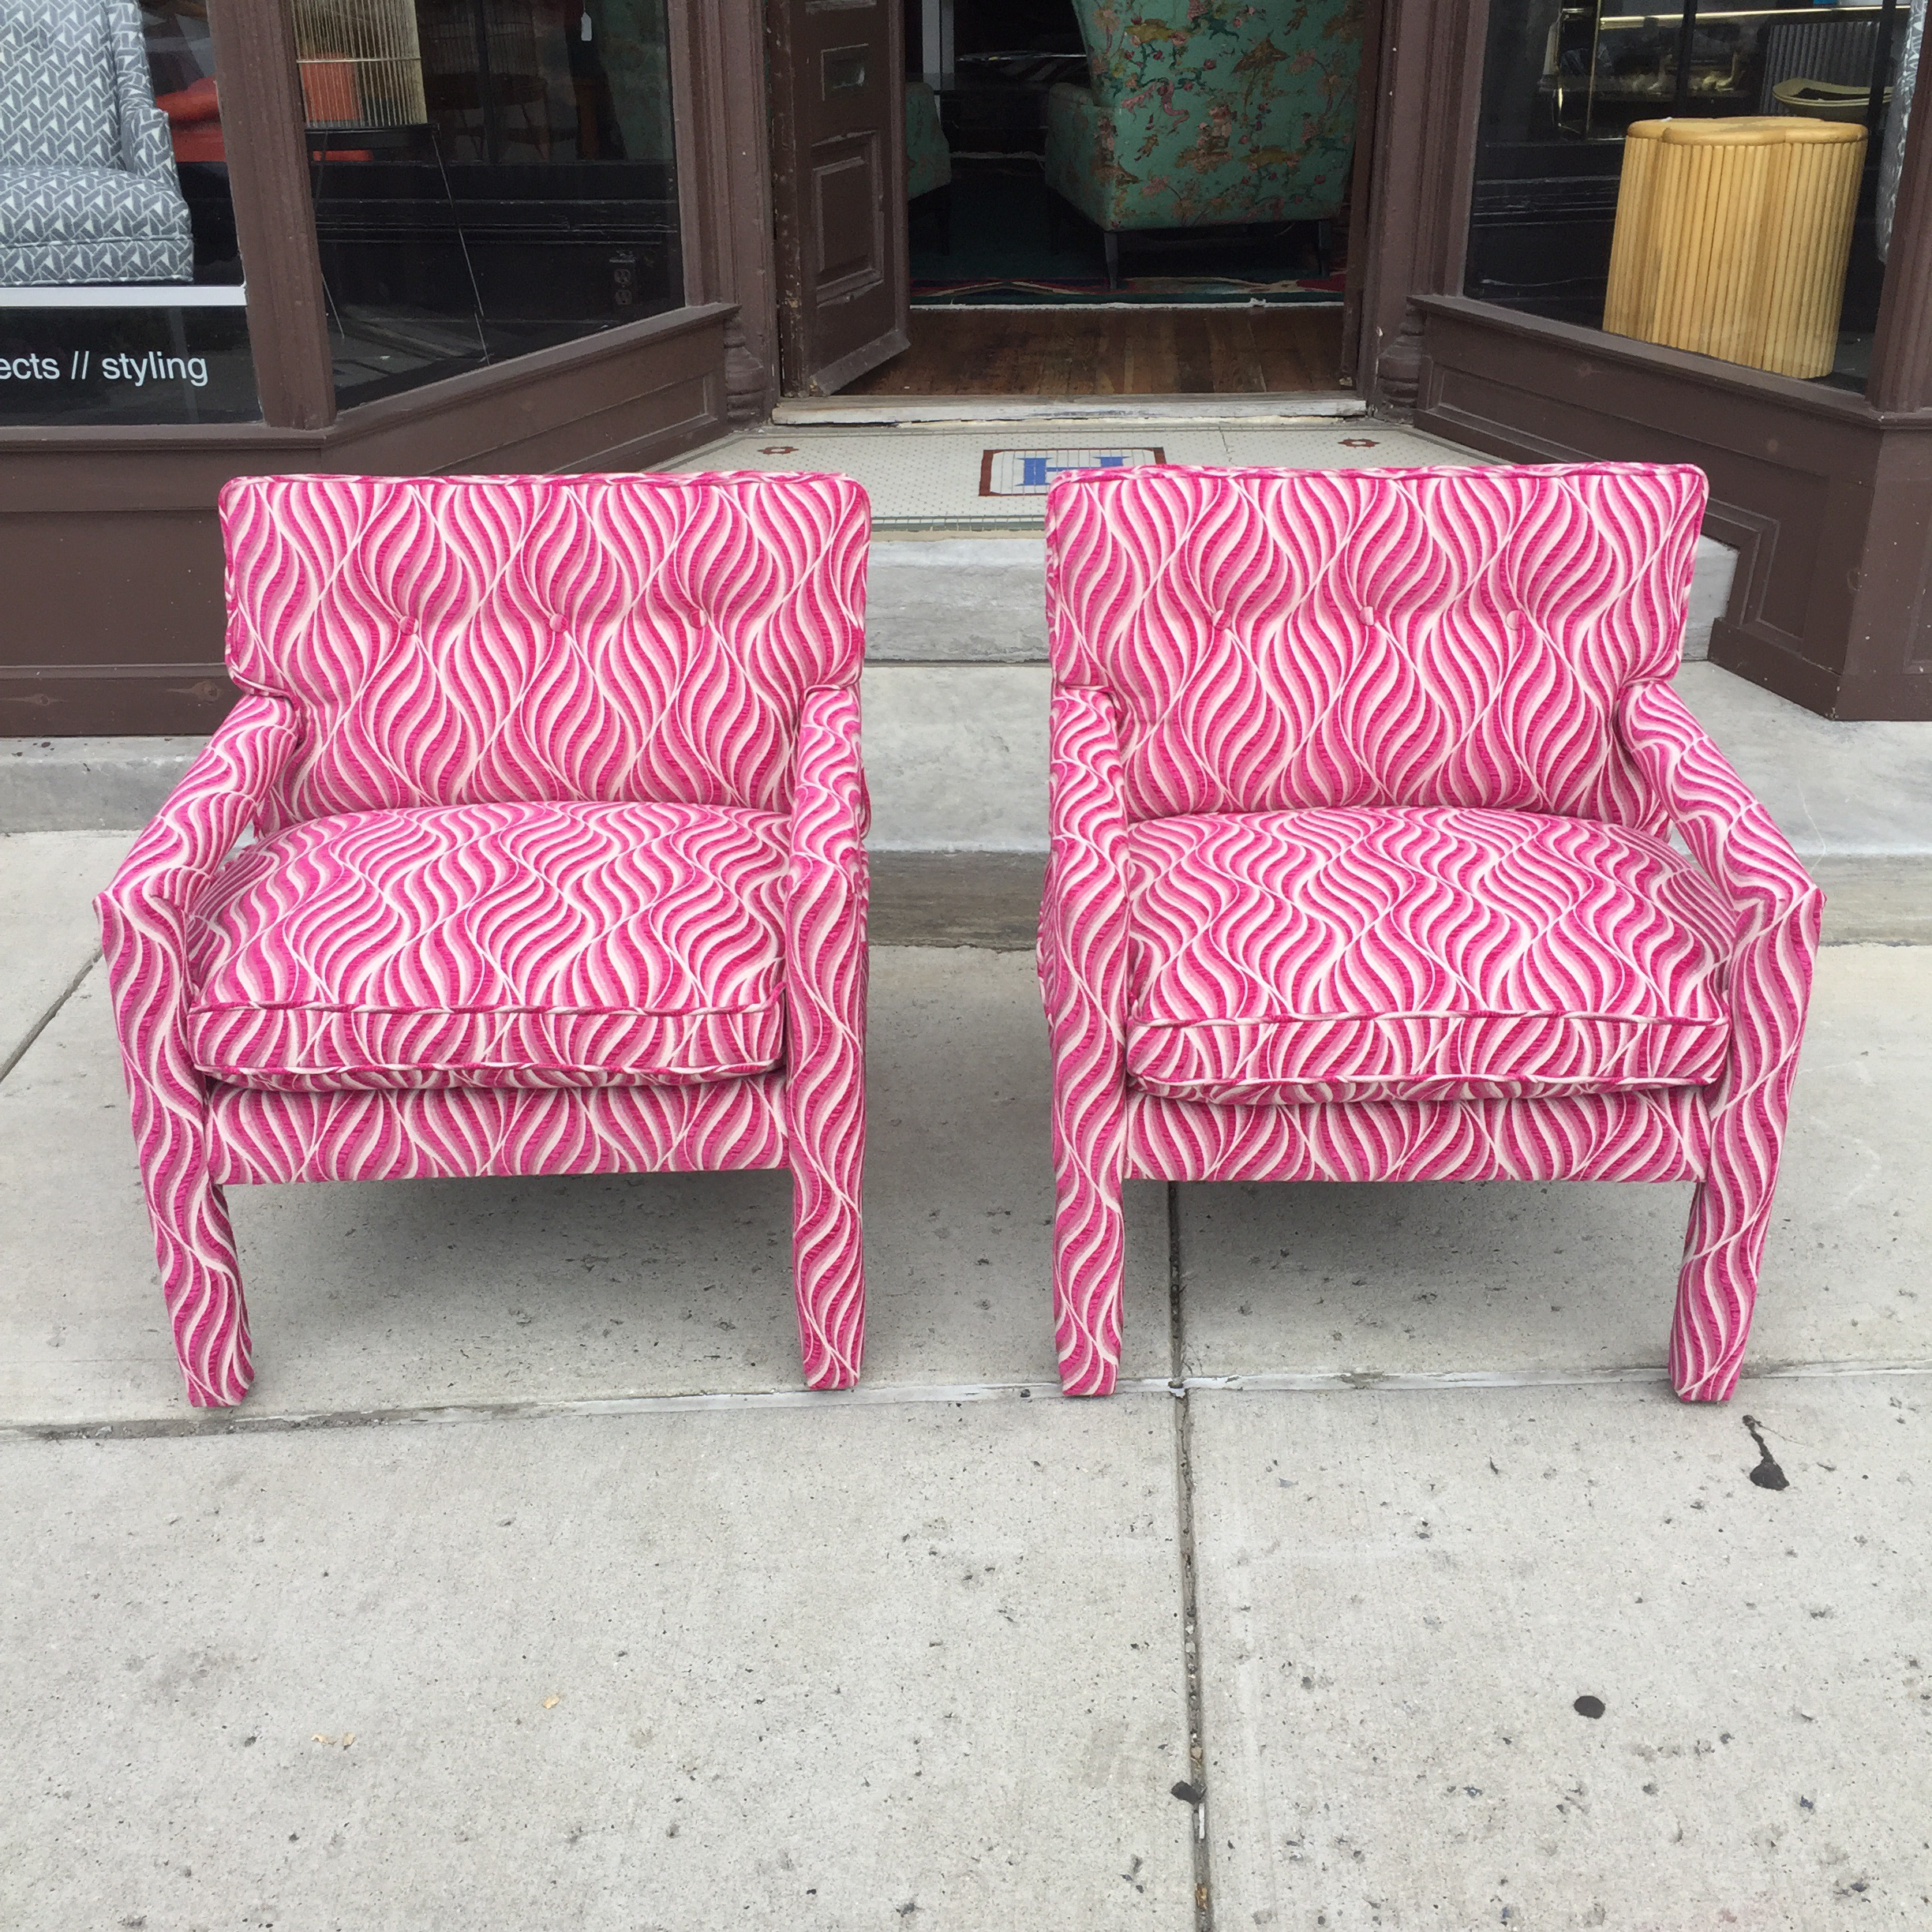 Fuschia furniture Magenta Painted Hollywood Regency Fuschia Pink White Animal Print Parsons Chairs Pair For Sale Chairish Fuschia Pink White Animal Print Parsons Chairs Pair Chairish